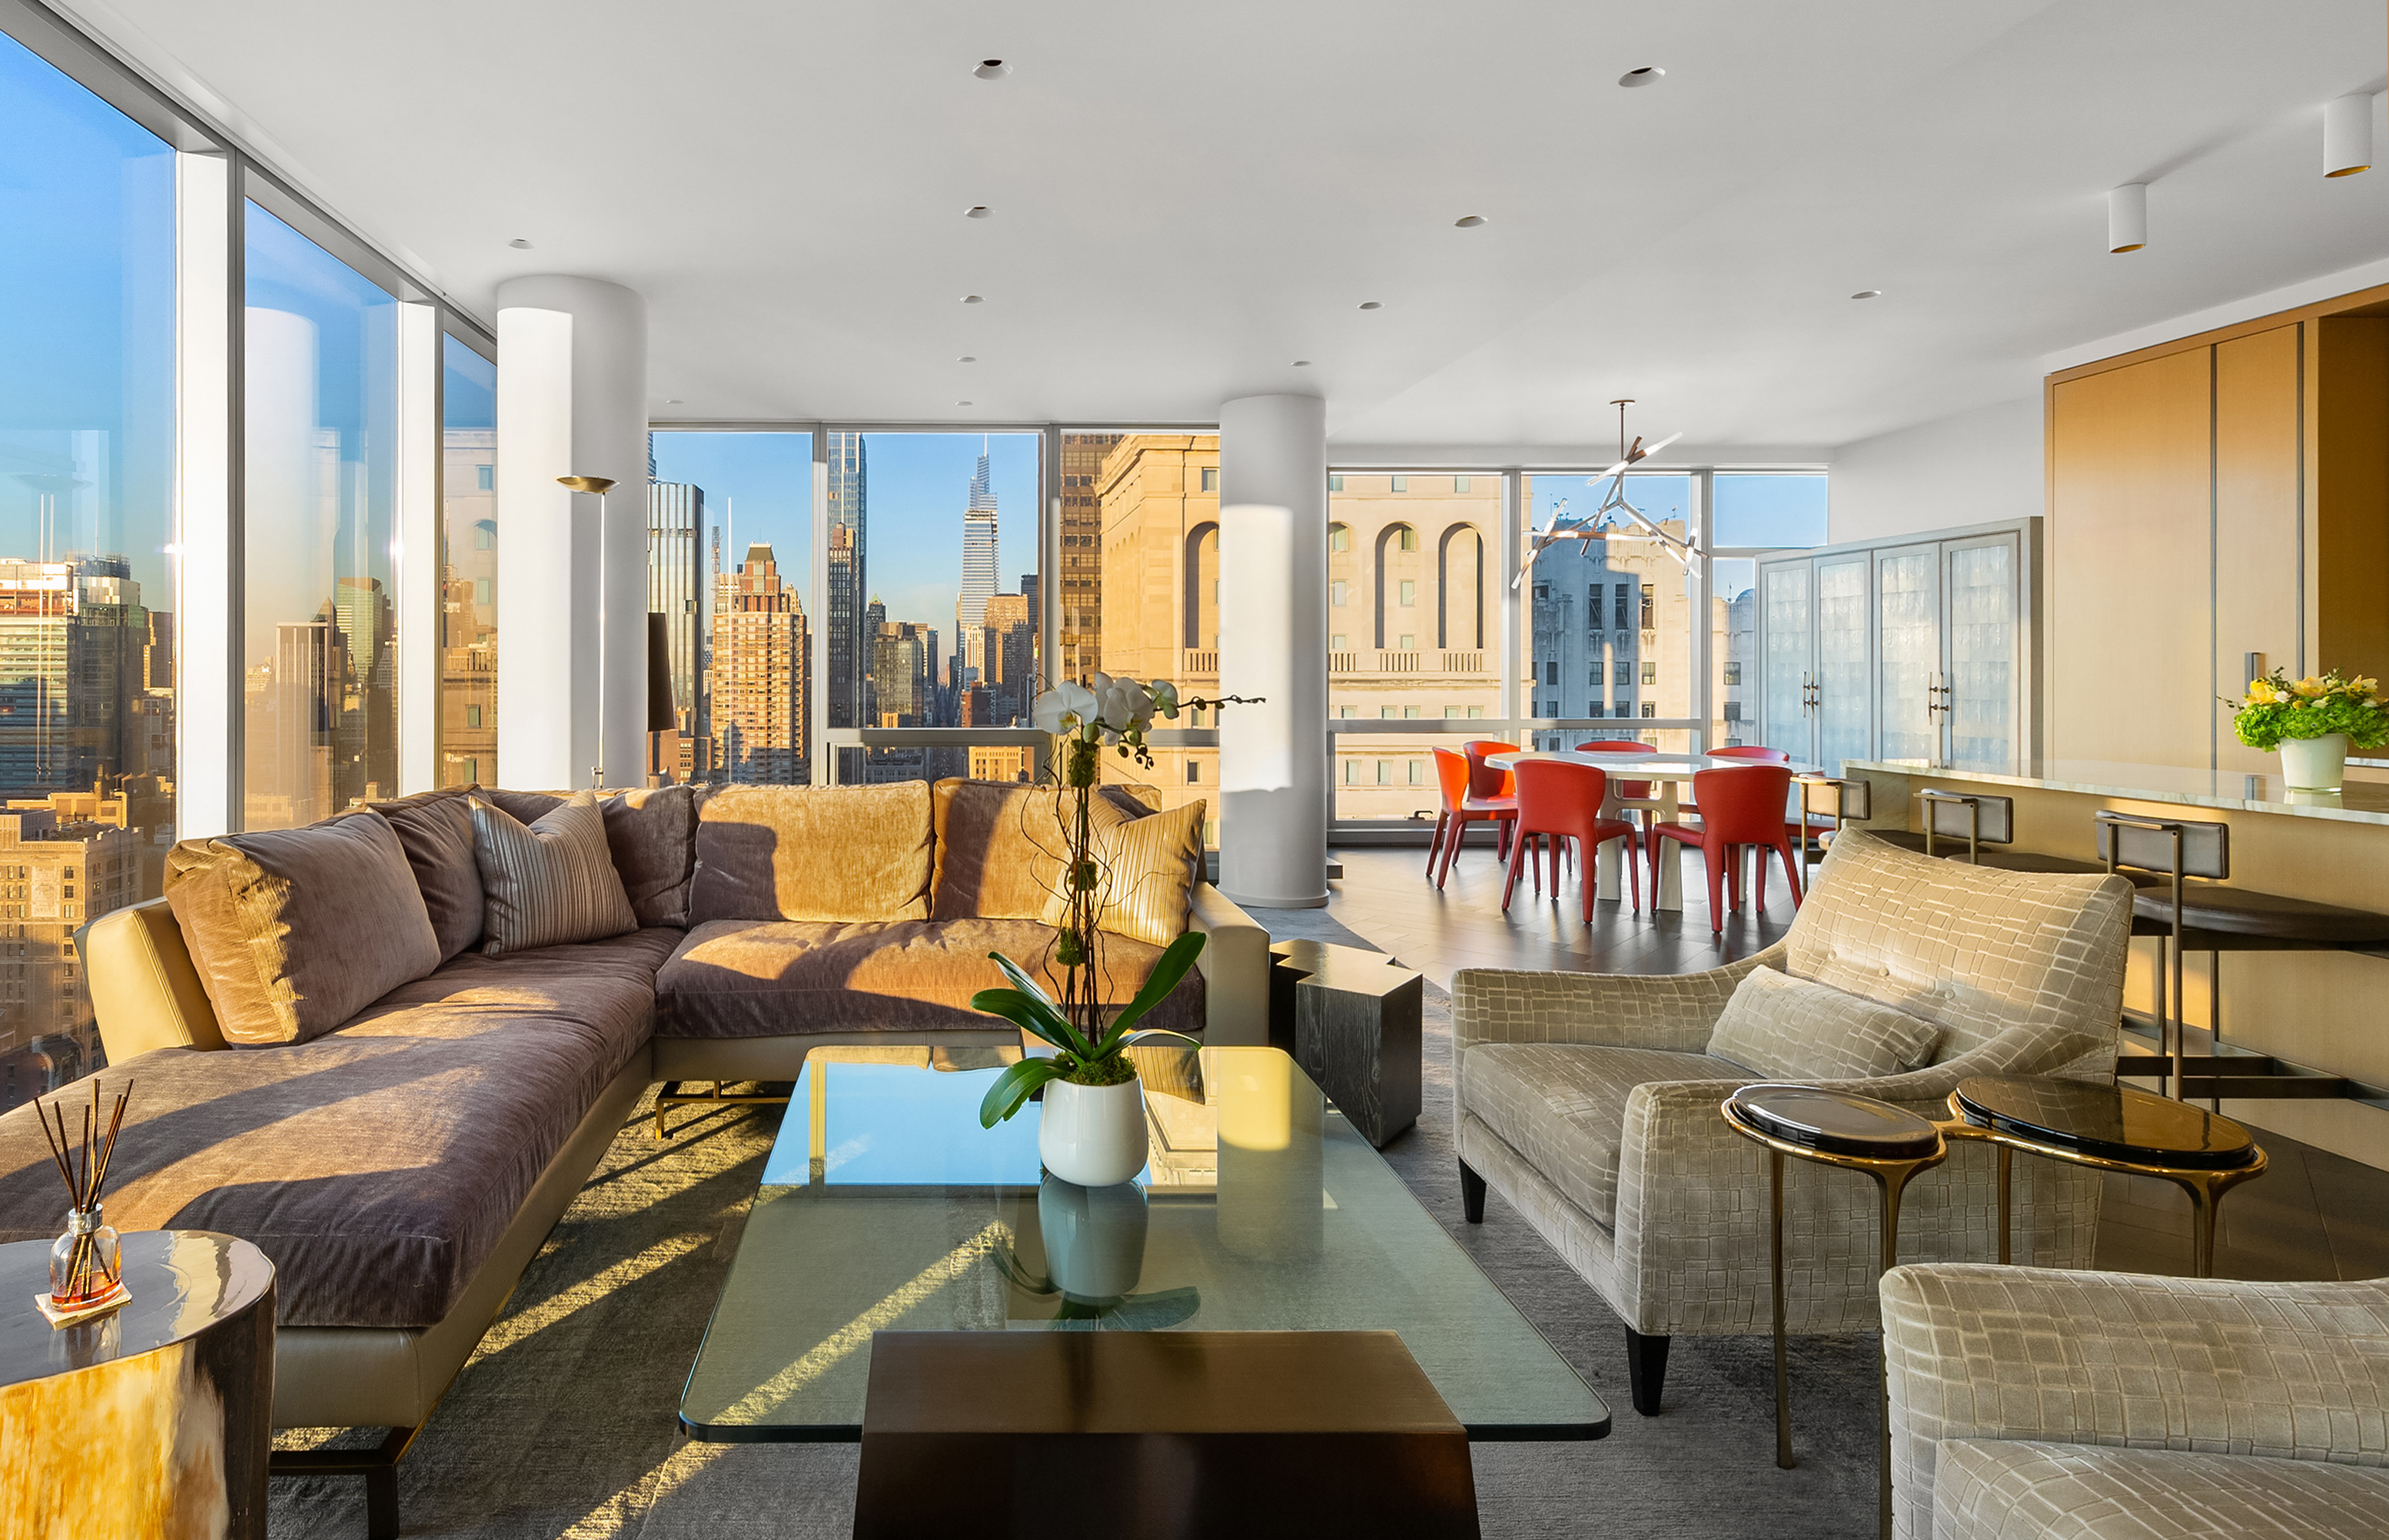 With unparalleled, 360o city views, this spectacular 3,310 sq.ft, four bedroom, four bathroom home occupies the entire 41st floor of the iconic One Madison condominium.  Unencumbered sunrise and sunset views of the Empire State Building, Madison Square Park, the Hudson River and beyond await you, thanks to massive, floor-to-ceiling windows and 11-foot ceilings in every room. An exquisitely designed interior by Yabu-Pushelberg and unmatched attention to detail make this a rare, not-to-be-missed opportunity.   Access the residence by a security-keyed elevator into the private foyer. Entertain in style in the sprawling, light-filled great room with north and west exposures, featuring contemporary touches like architectural columns and bespoke 9-inch quarter sawn oak flooring.  The open chef's kitchen features a Borghini Calacatta marble island with seating, a pull-out pantry, custom cabinetry and a complete suite of fully-integrated, top-of-the-line Gaggenau and SubZero appliances.    The lavish master suite sits in its own corner and offers beautiful panoramic views.  It includes an extraordinary walk-in closet and a spa-like marble bath boasting a free-standing soaking tub, separate glass-enclosed shower and a private water closet, all overlooking the Met Life Clock-Tower.   The three additional bedrooms are equally well-apportioned and also boast walls of windows and generous, custom-designed closet space. Two of the three bedrooms have en-suite marble baths with radiant heat floors.    This exceptional home features state of the art technology including motorized solar shades and a customizable Control4 Smart Home System.  Storage unit is available for purchase.    The Cetra-Ruddy designed One Madison, a 60-story luxury condominium situated at the nexus of the city's most charismatic and vibrant neighborhoods: Flatiron, Gramercy and NoMad. One Madison offers unparalleled services and extensive amenities that include a full-time doorman and concierge, great room with dining room and lounge, parlor room, screening room, a staffed catering kitchen, state-of-the-art fitness center, yoga room, 50 foot heated indoor swimming pool, and a spa with a glass enclosed steam room overlooking Madison Square Park.